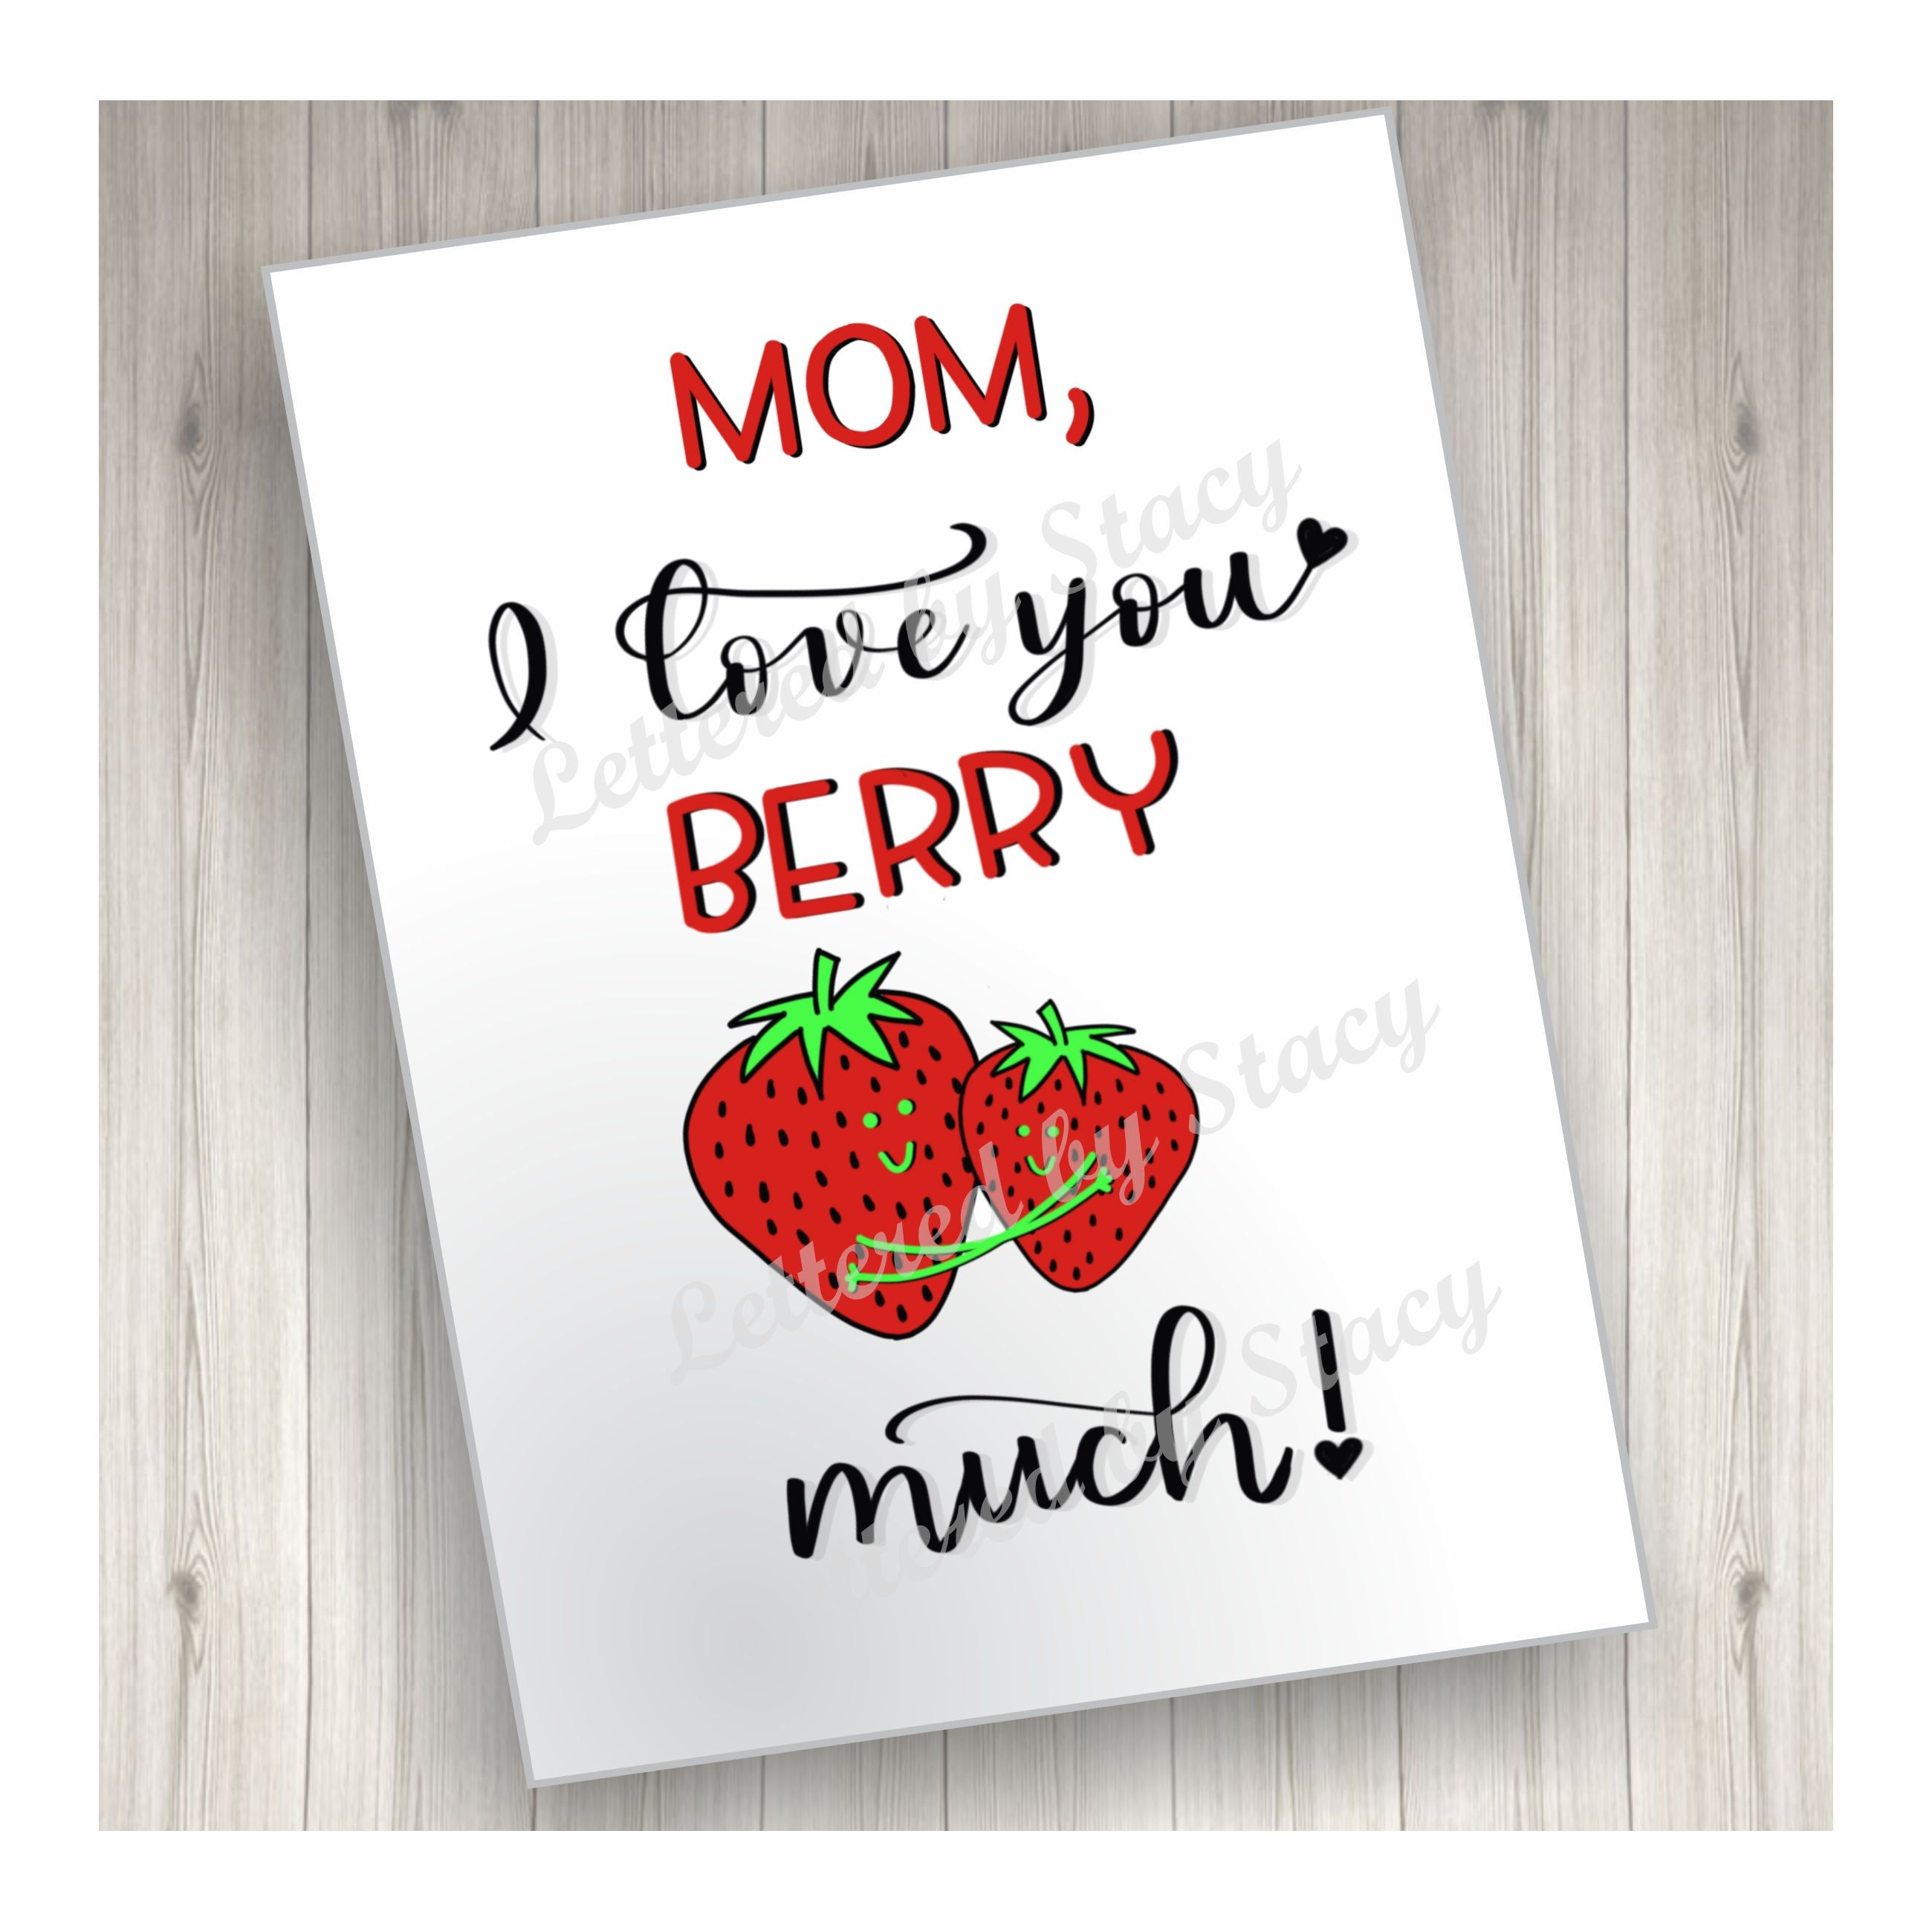 graphic relating to I Love You Card Printable known as Moms Working day Card - I enjoy your self berry a lot pun card